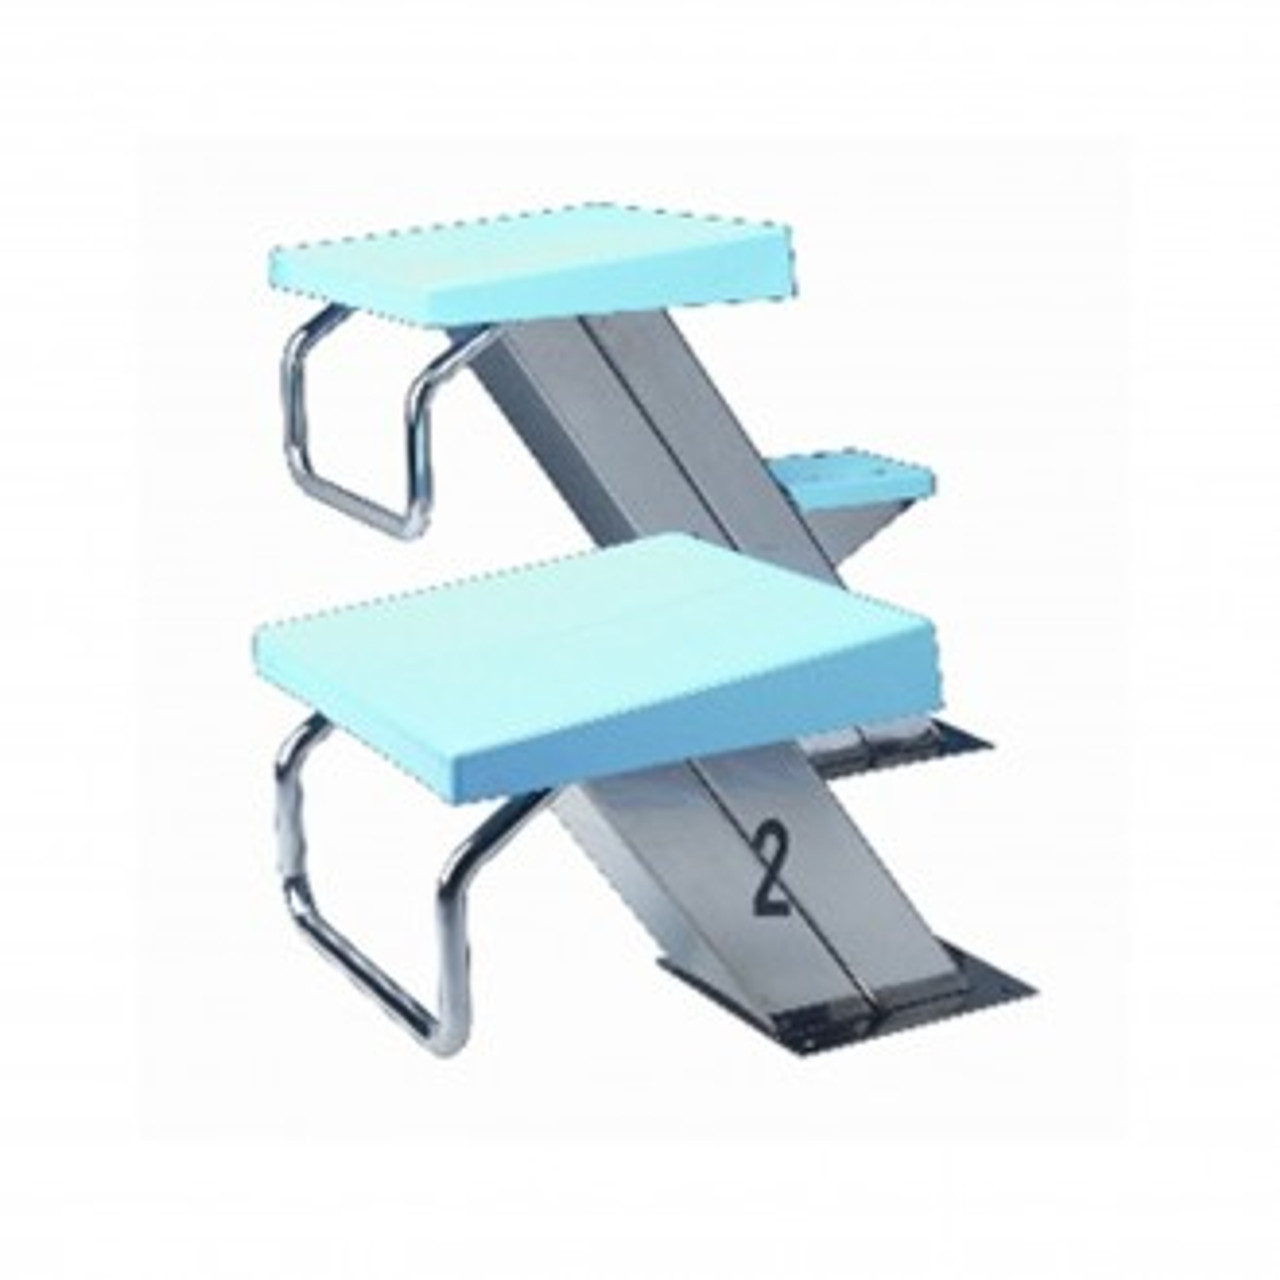 Starting Block Podiums for Competition Swimming Pools